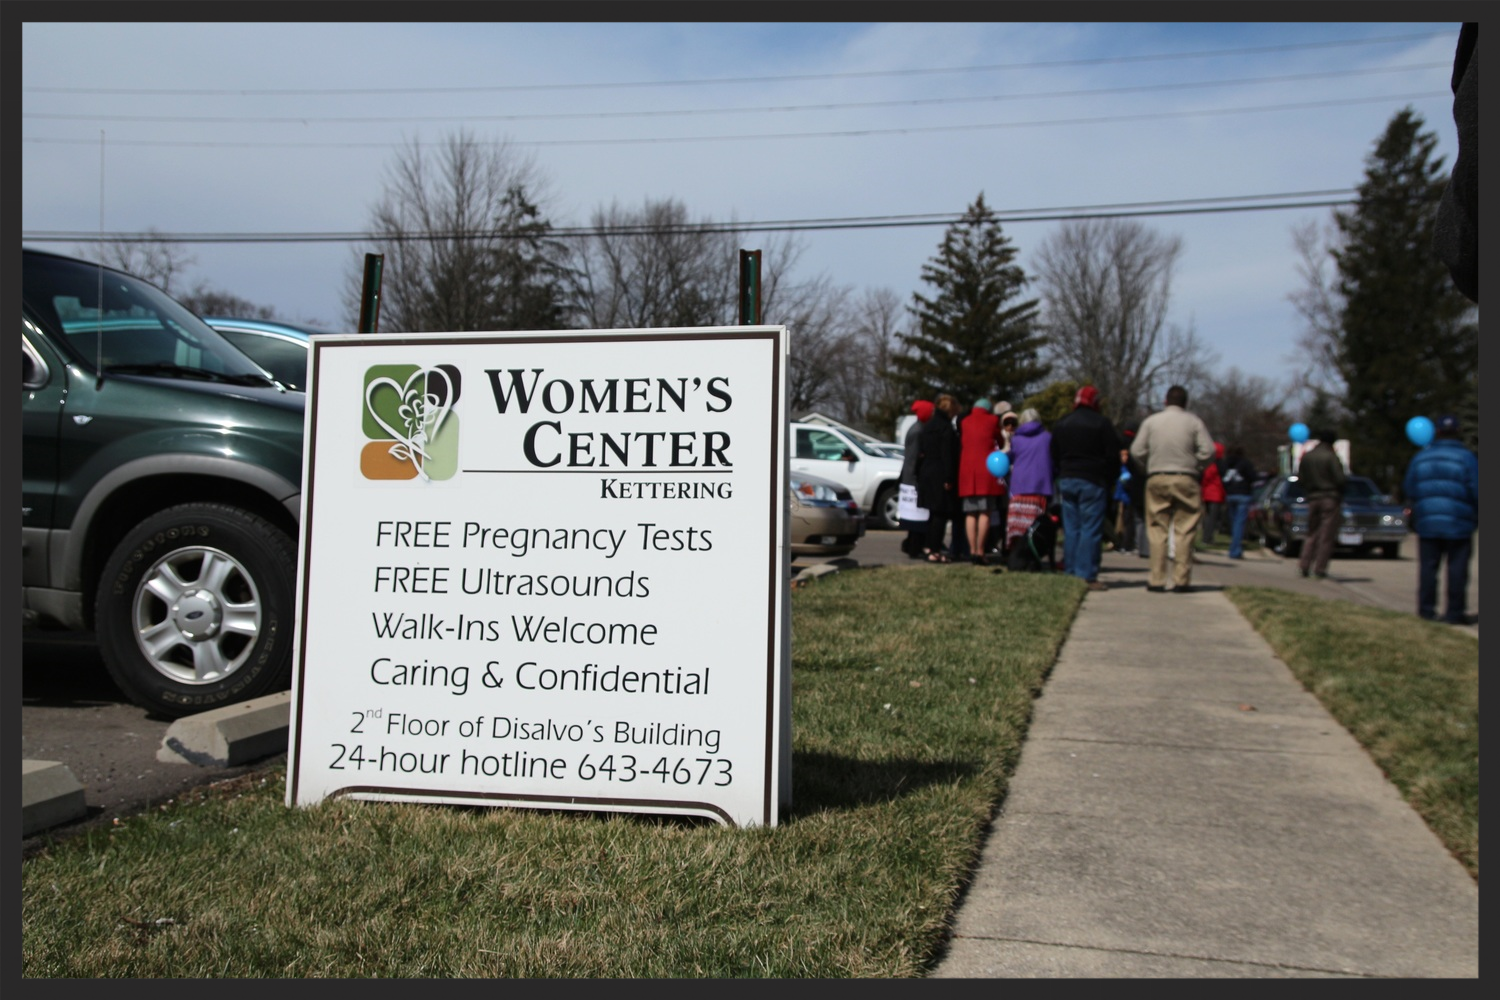 Women's Centers of Ohio owns the Crisis Pregnancy Center across the street from Dr. Haskell's Kettering Clinic. In this photo, their temporary sign is seen during the 40 Days for Life protest at the end of March. Their Kettering extension advertises free services, much like Miami Valley Women's Center.